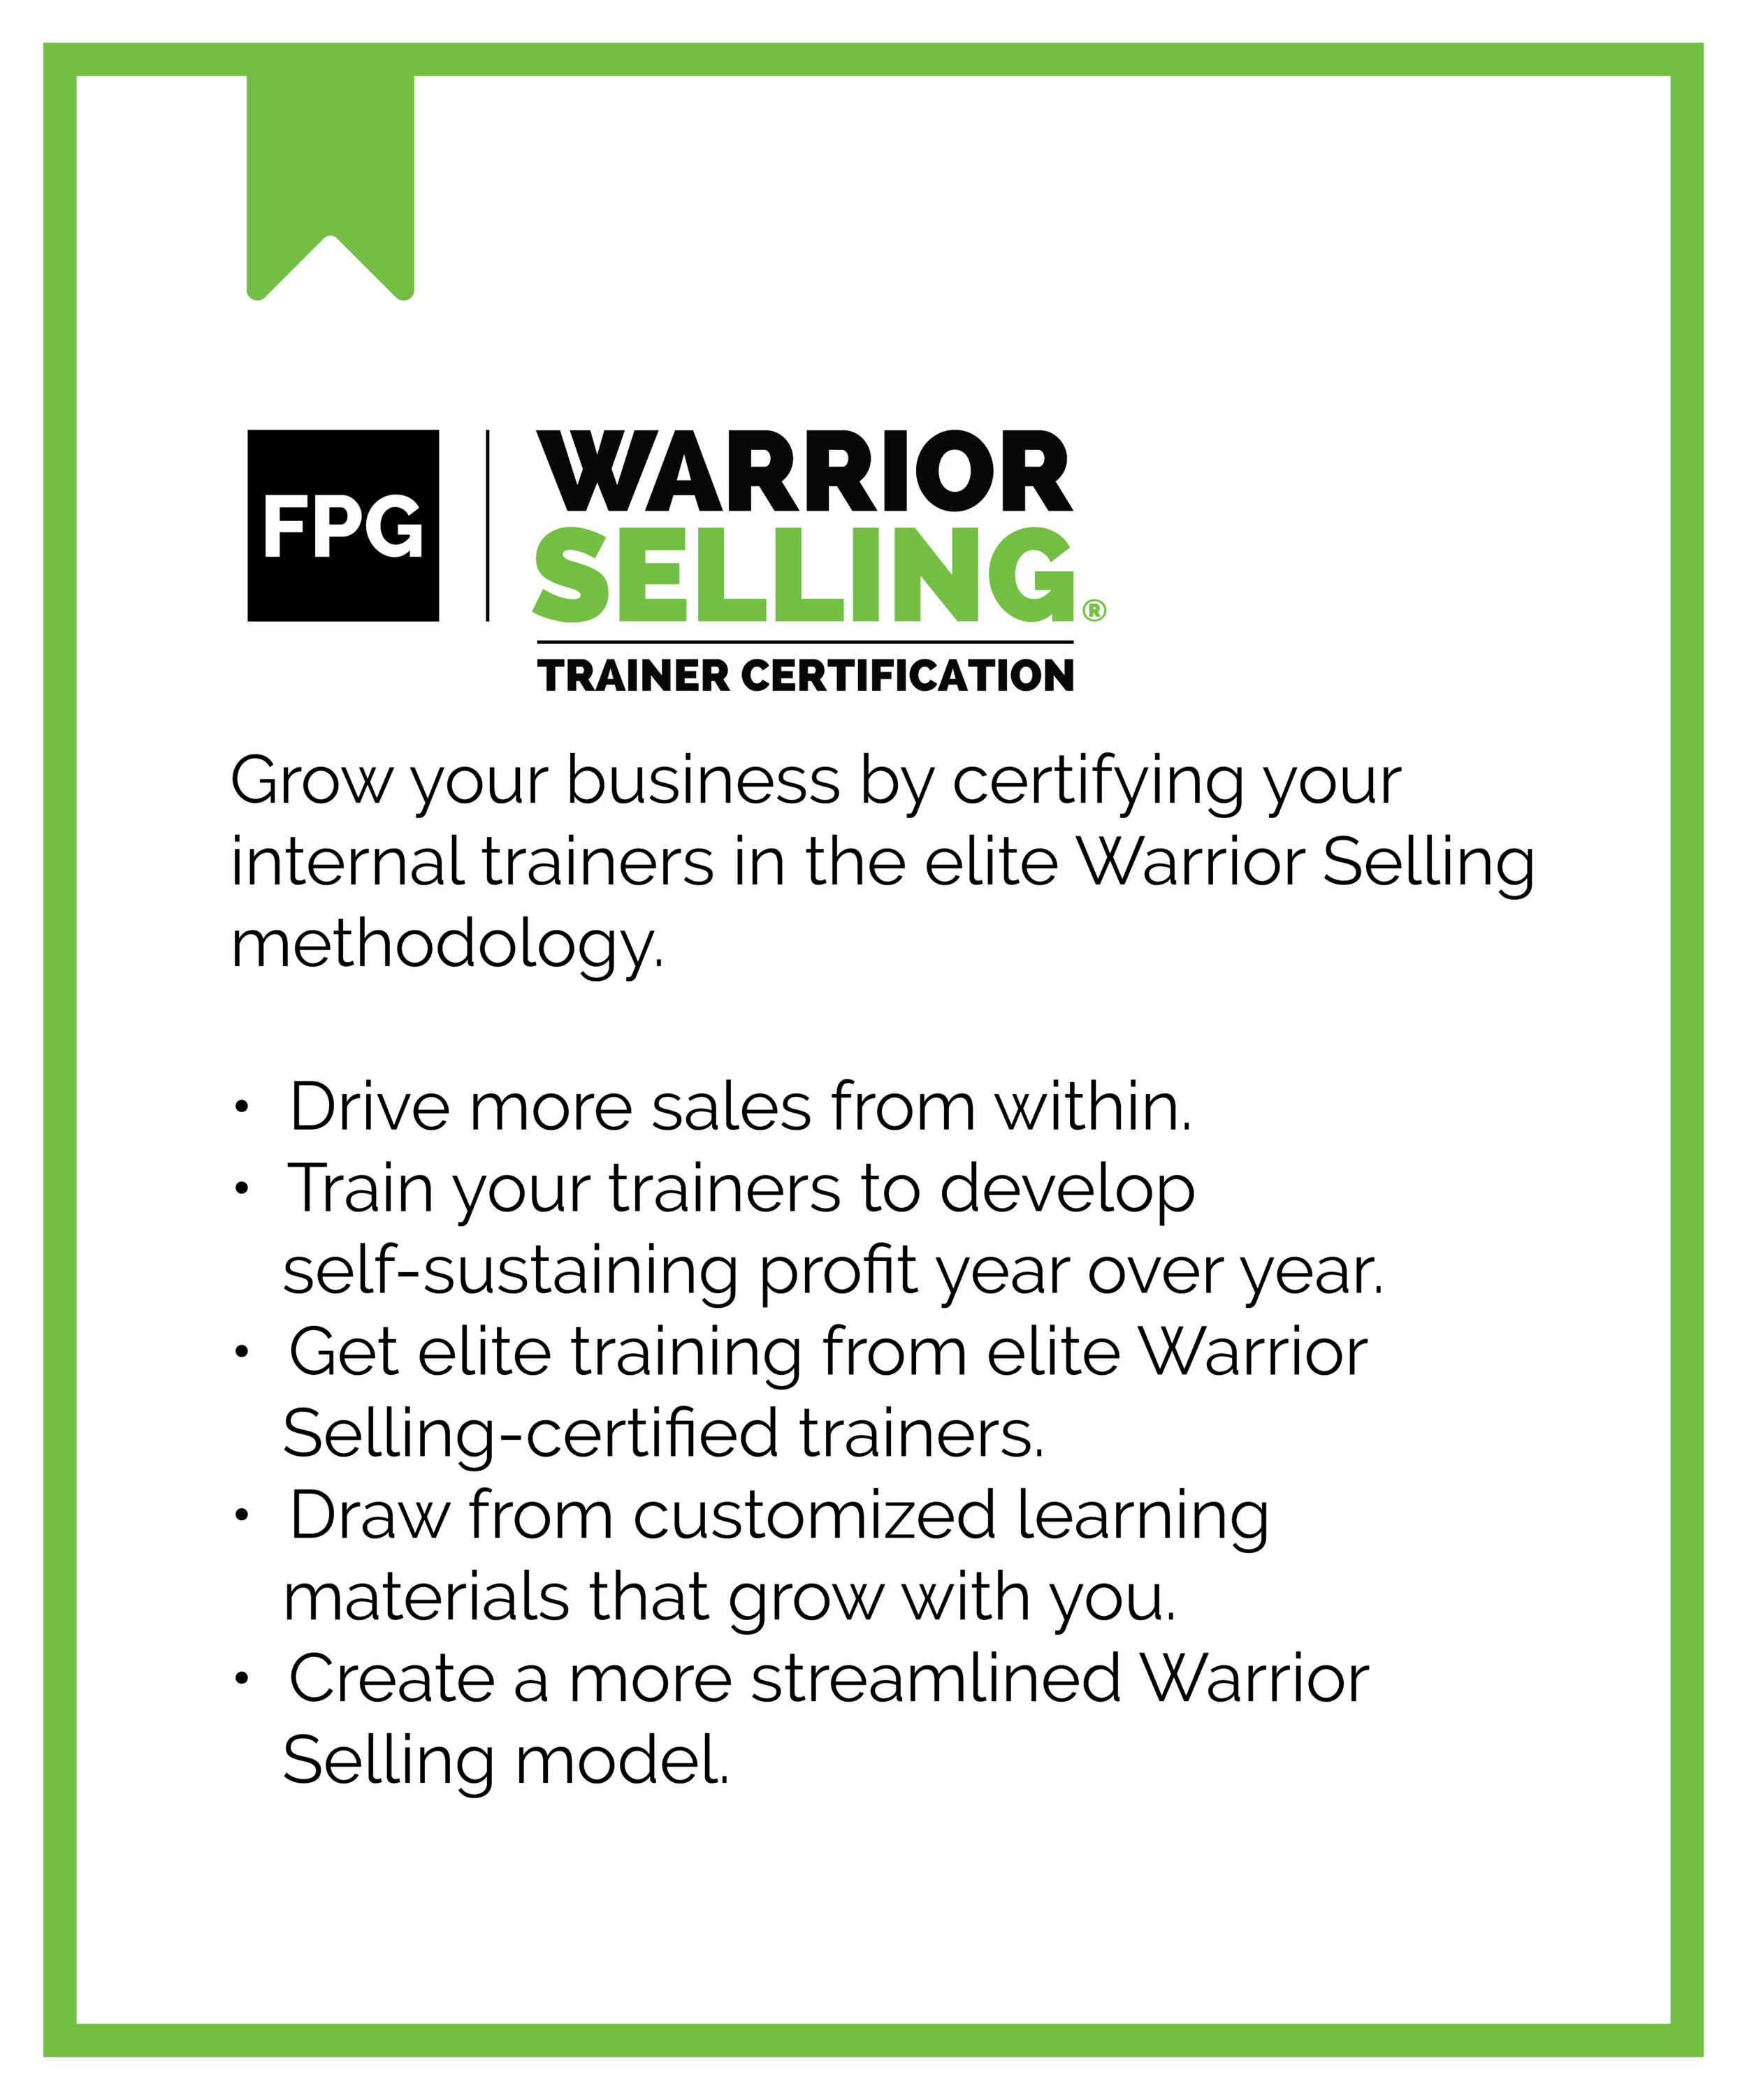 FPG Warrior Selling Trainer Certification. Grow your business by certifying your internal trainers in the elite Warrior Selling methodology. Drive more sales from within. Train your trainers to develop self-sustaining profit year over year. Get elite training from elite Warrior Selling-certified trainers. Draw from customized learning materials that grow with you. Create a more streamlined Warrior Selling model.